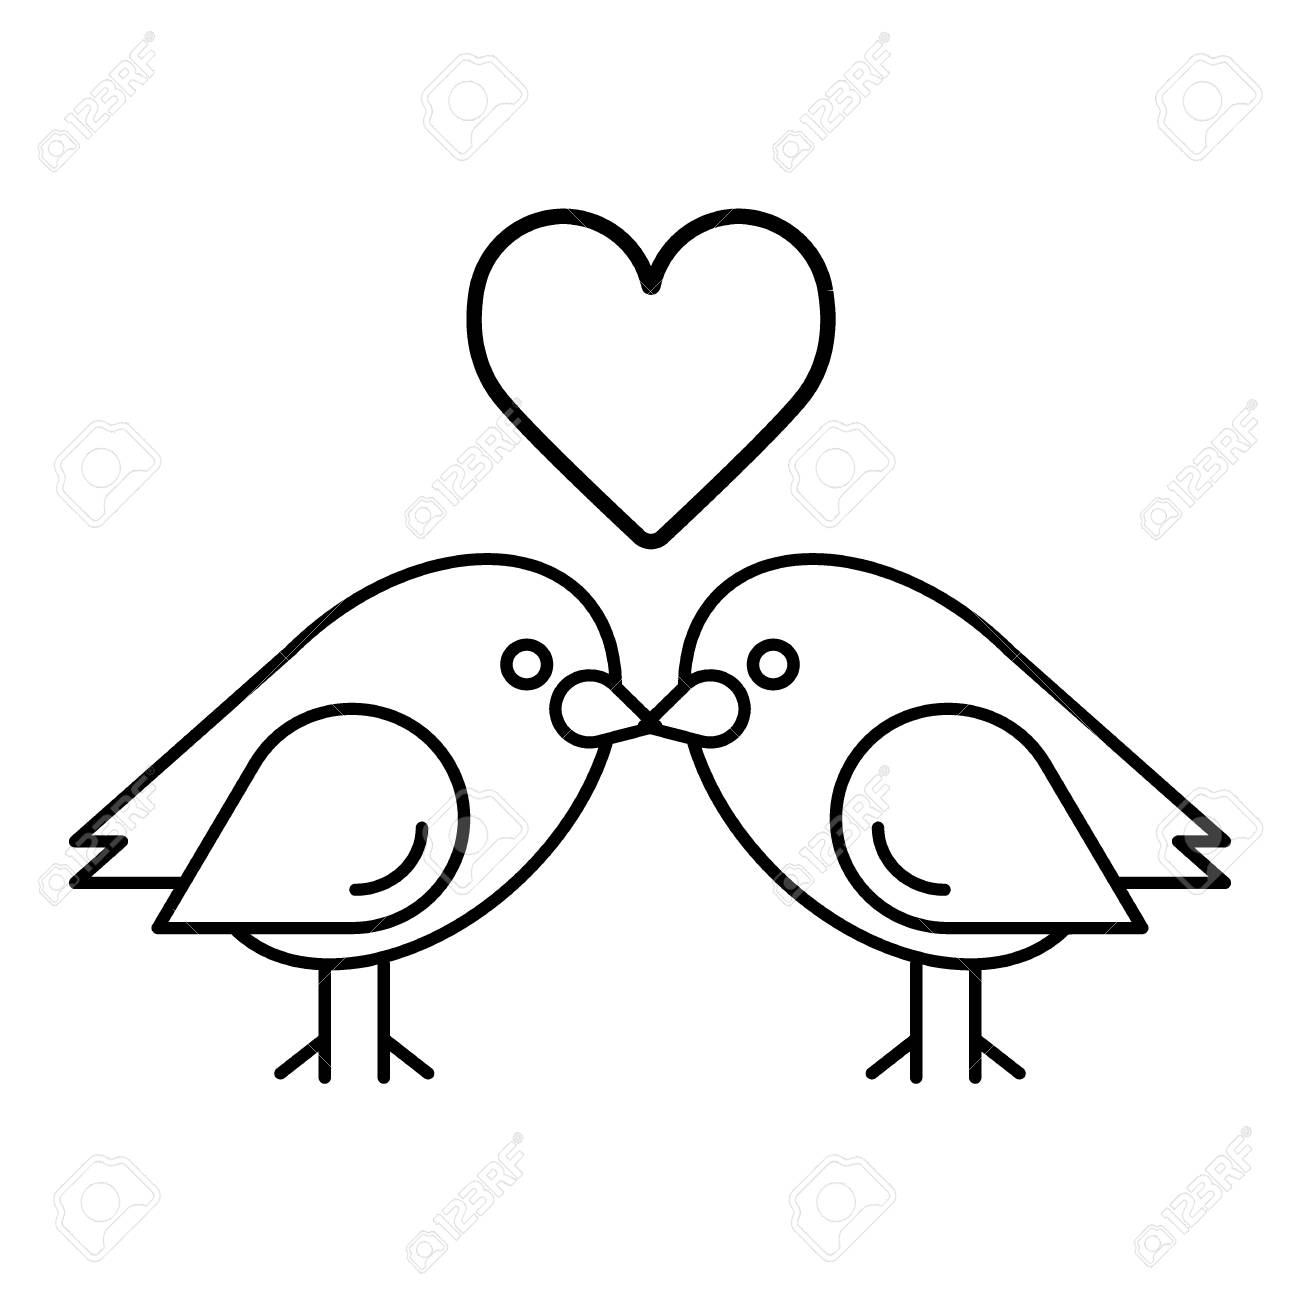 love birds with heart icon vector illustration royalty free cliparts rh 123rf com vector birds love vector birds flying